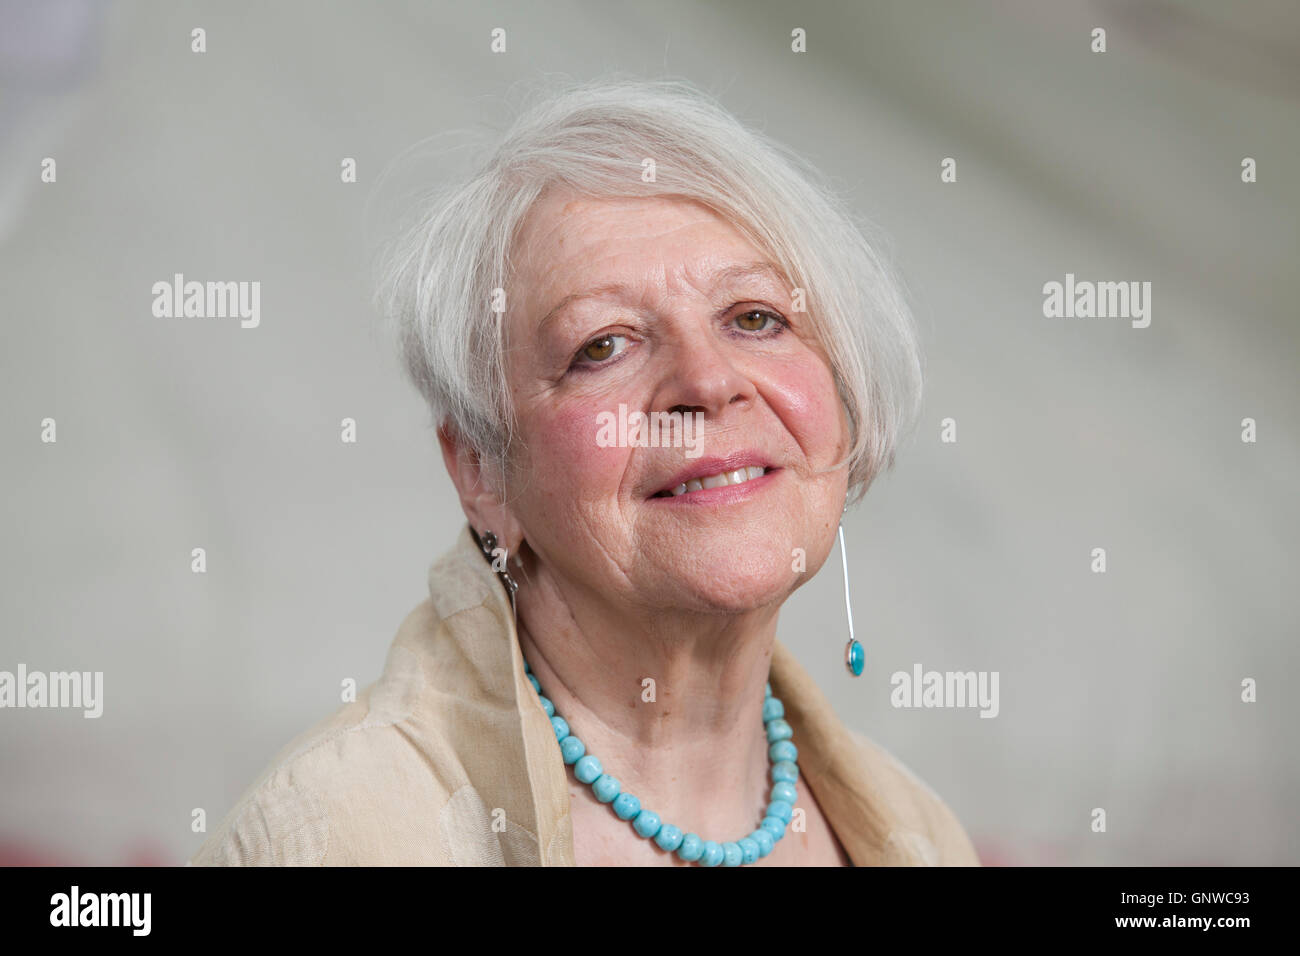 Liz Lochhead, the Scottish poet and dramatist, at the Edinburgh International Book Festival. Edinburgh, Scotland. - Stock Image